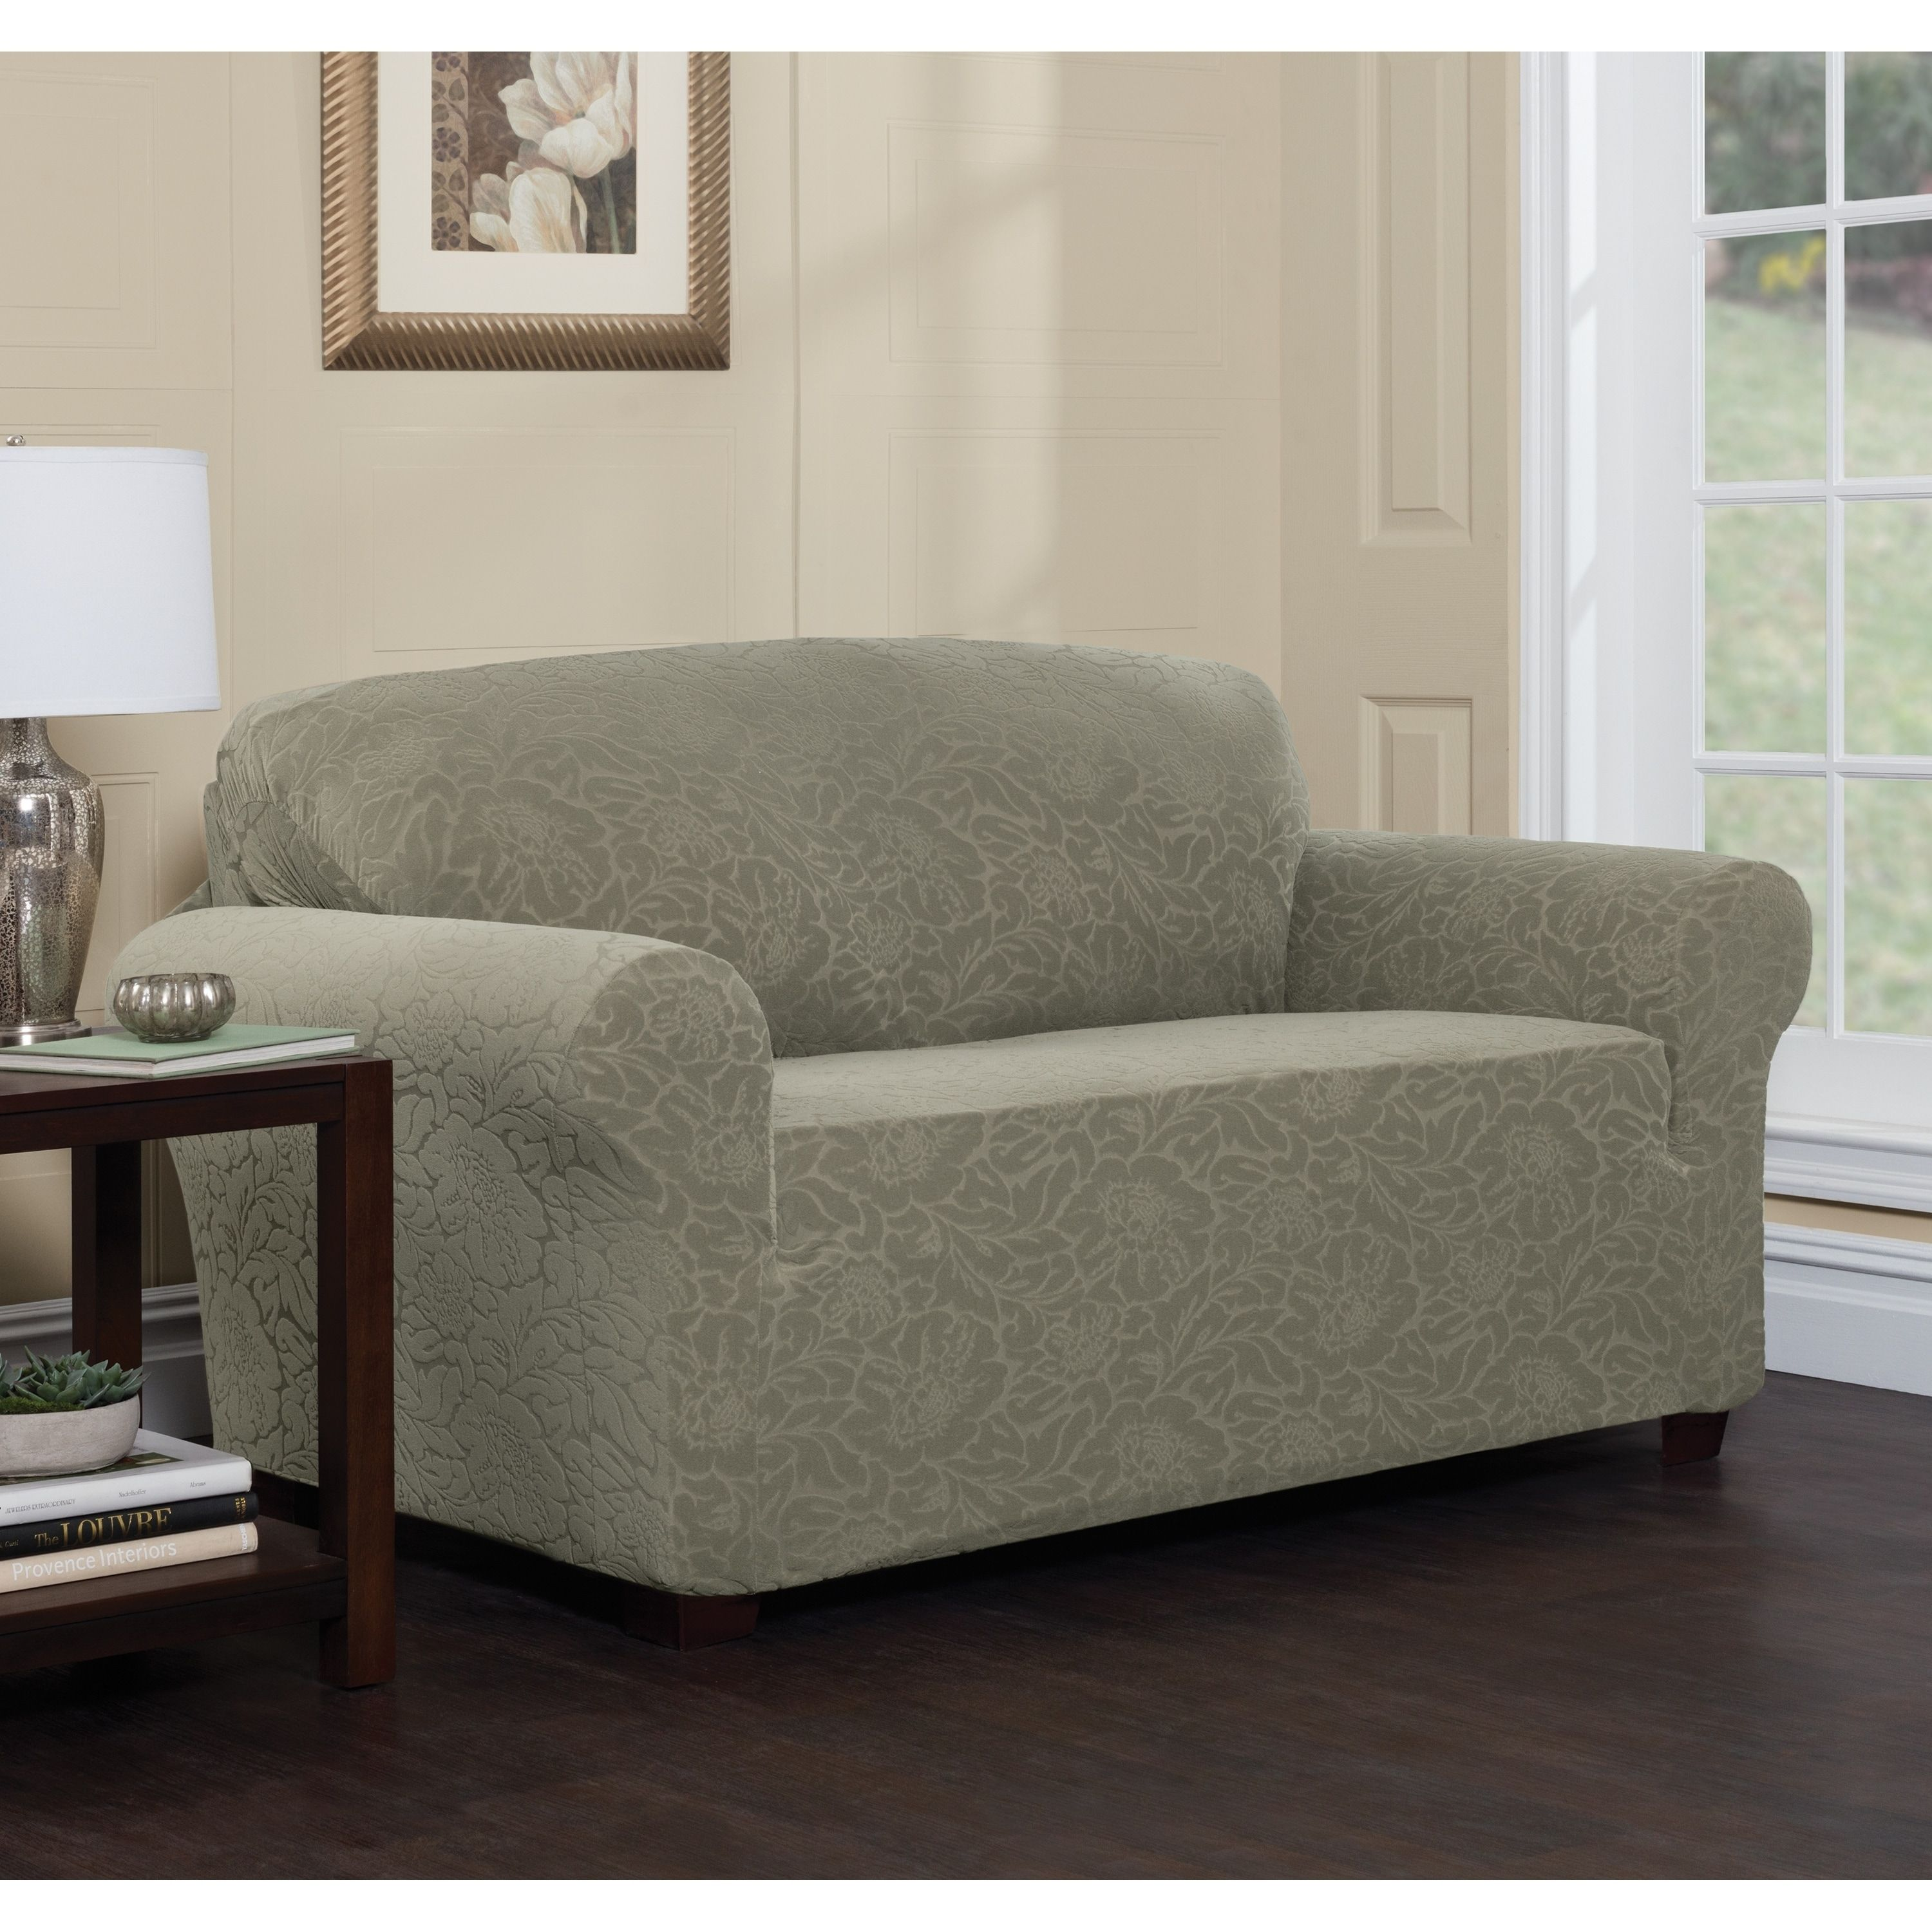 Polyester Sofa Washing Machine Leather Motion And Loveseat Stretch Sensations Floral Slipcover Green Wash